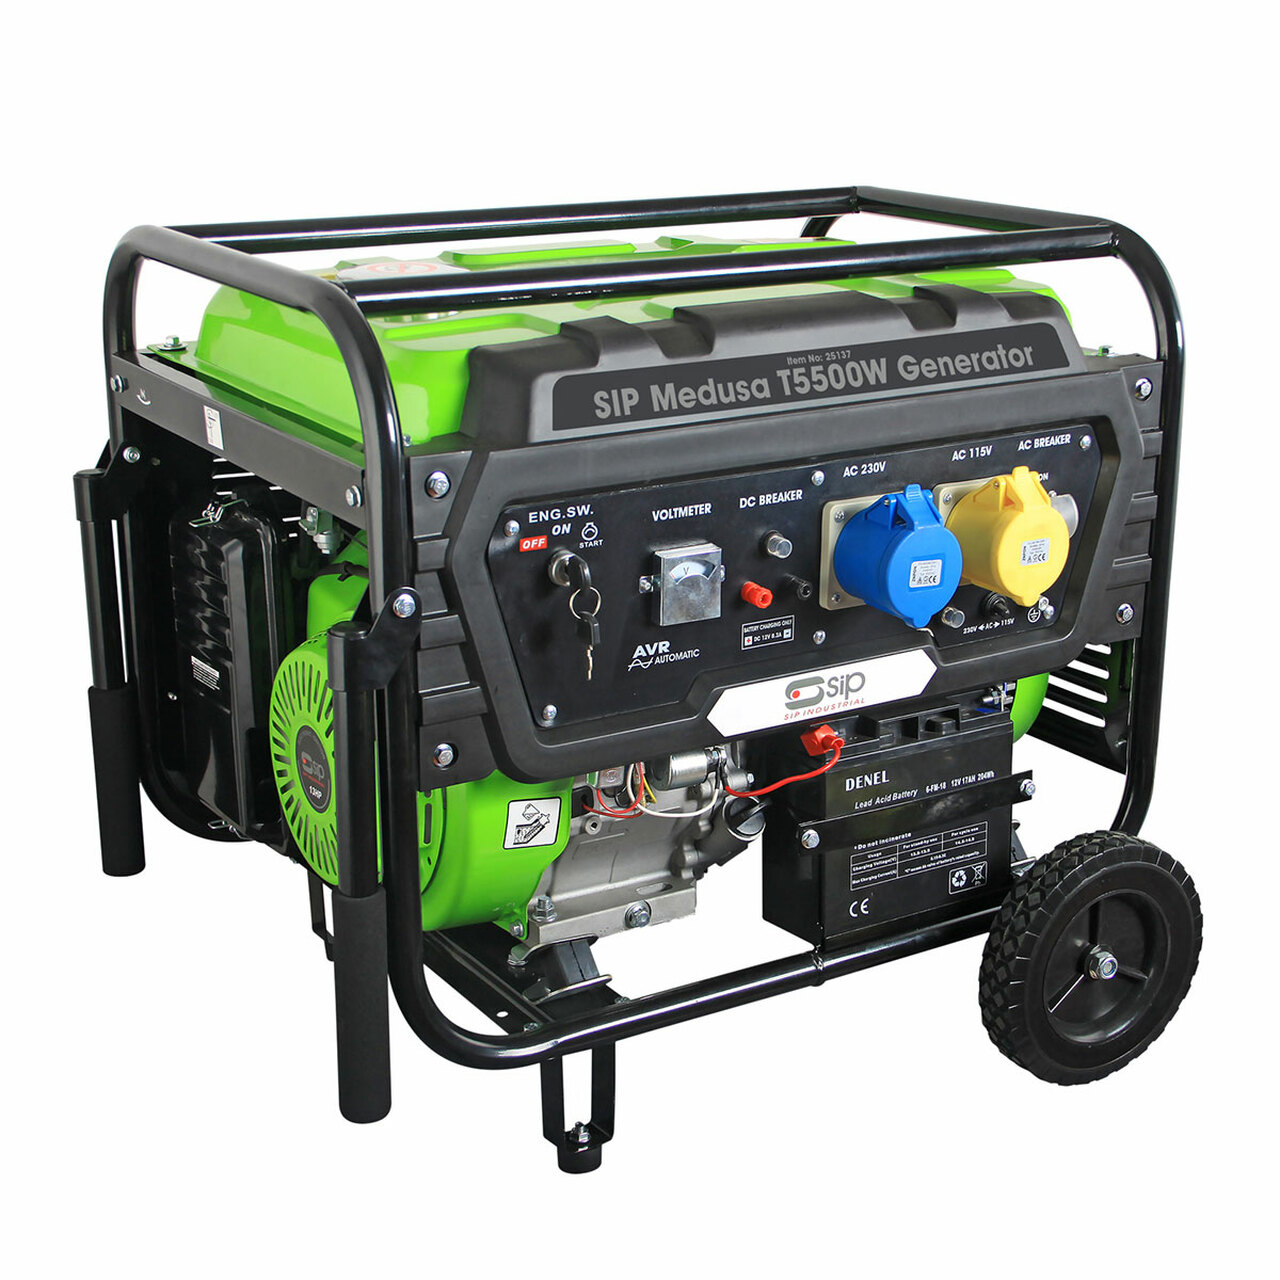 SIP Medusa T5500W Generator 25137   Automatic Voltage Regulator (AVR) helps to deliver both stable non-fluctuating power for sensitive equipment   toolforce.ie